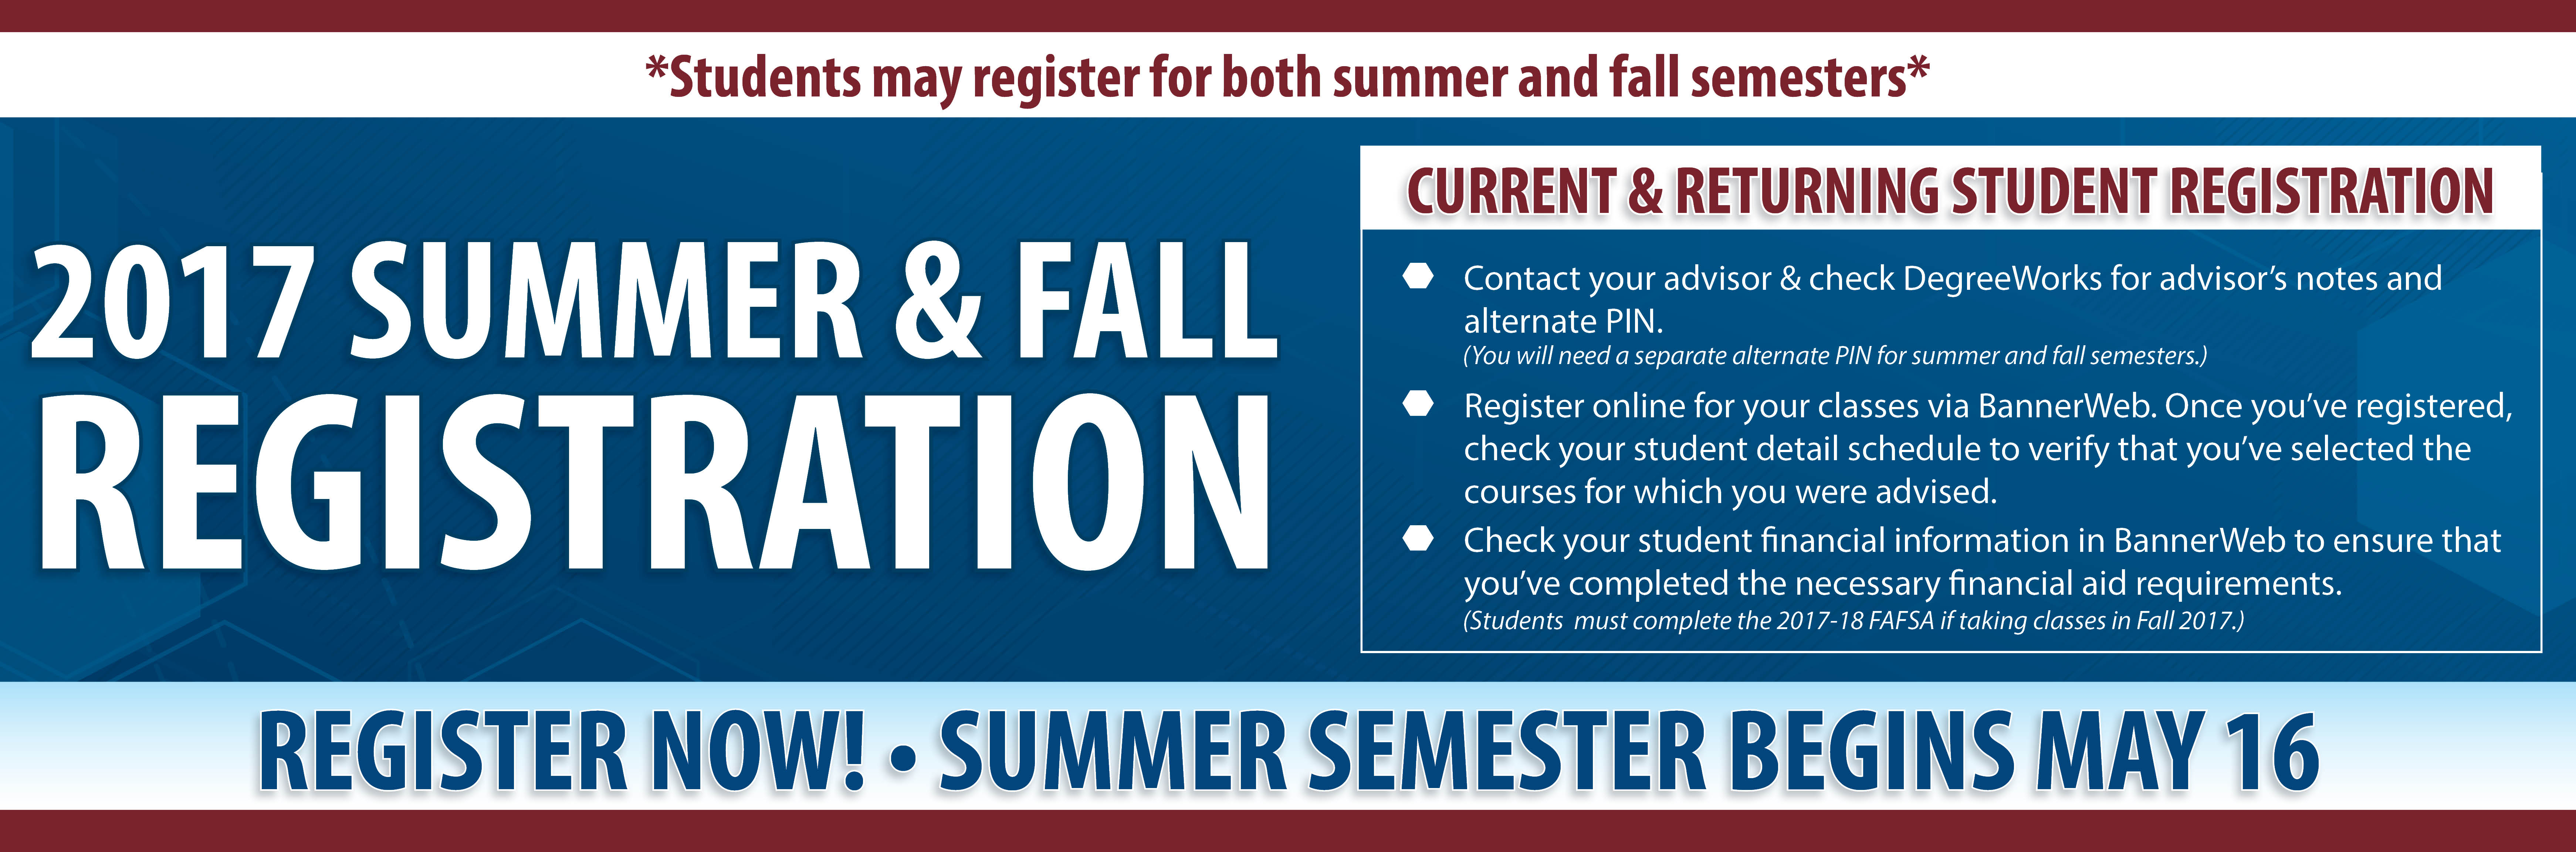 central technical college beginning 13 students will now have the opportunity to register for summer and fall